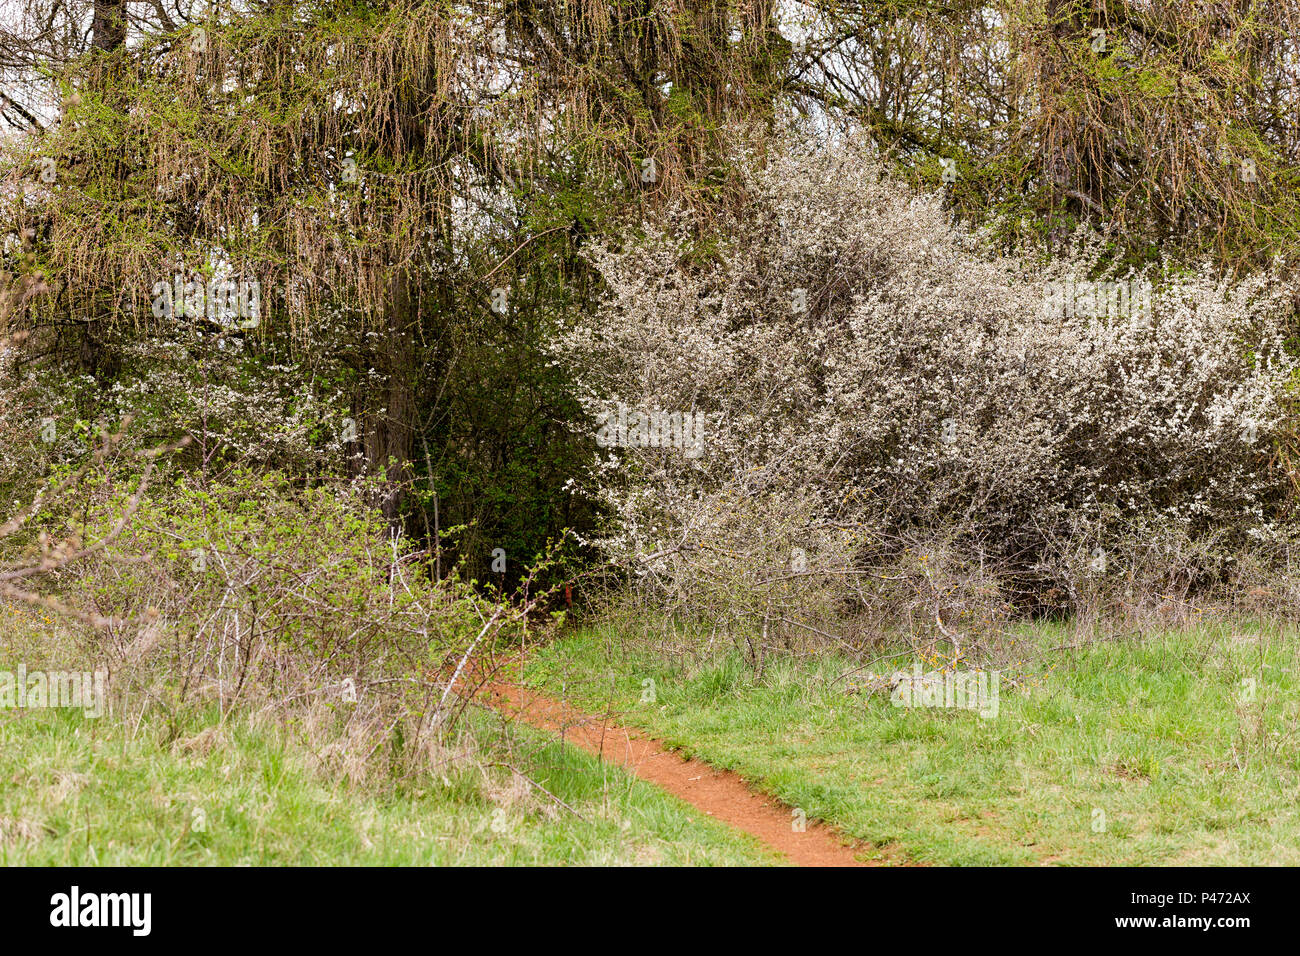 Walk over old mining area - Stock Image